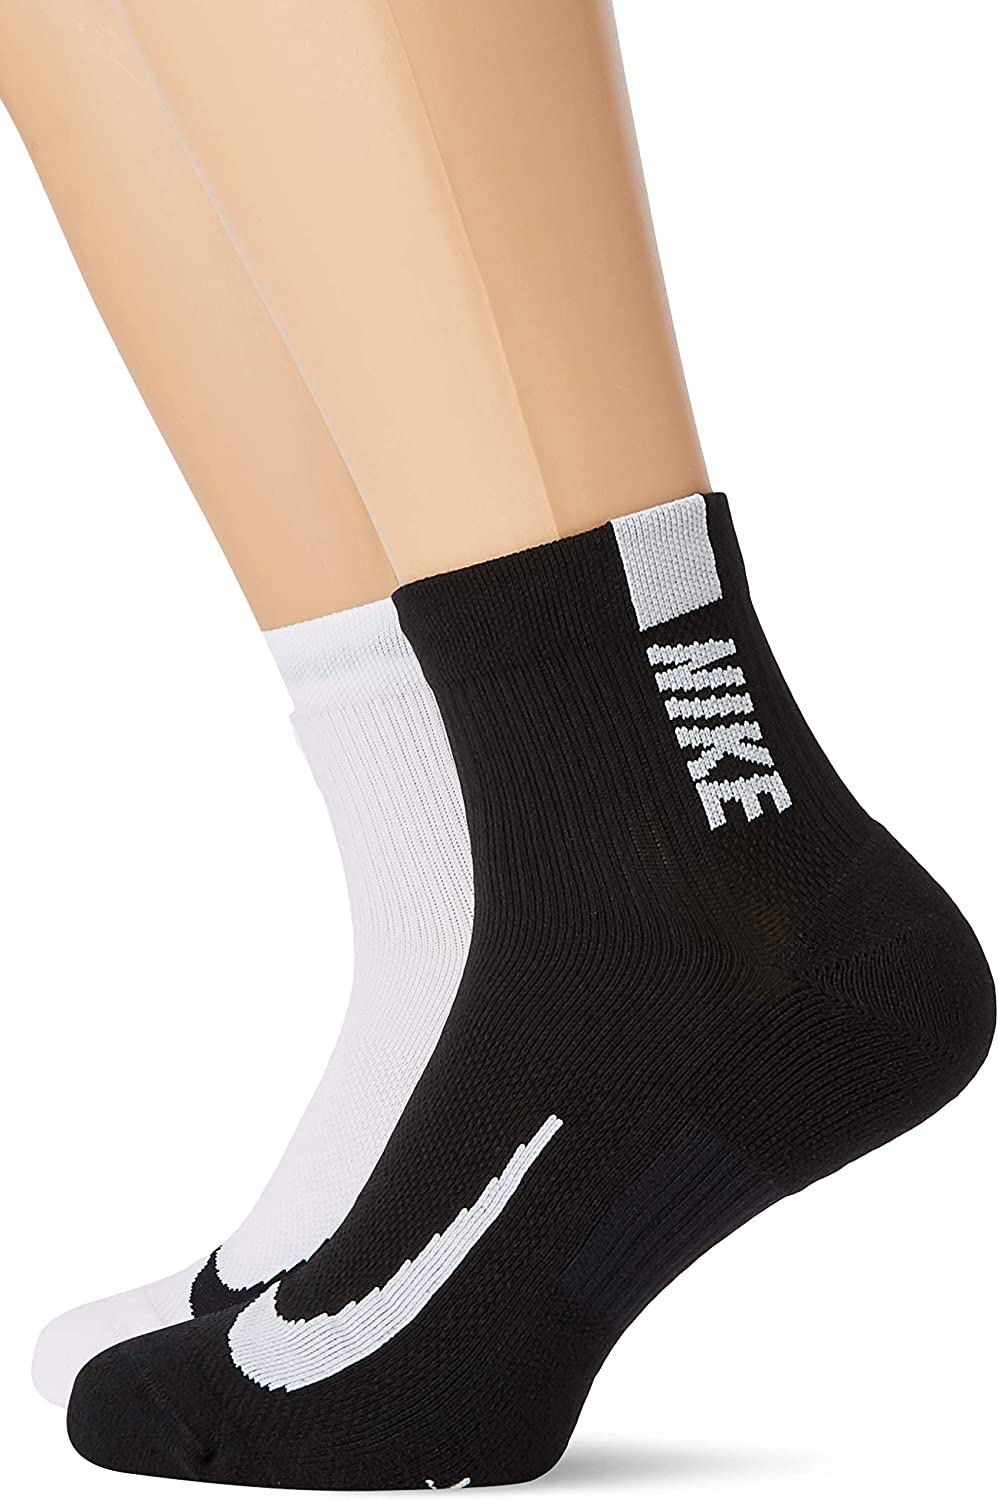 Nike unisex-adult Unisex Nike Multiplier Running Ankle Socks (2 Pair)